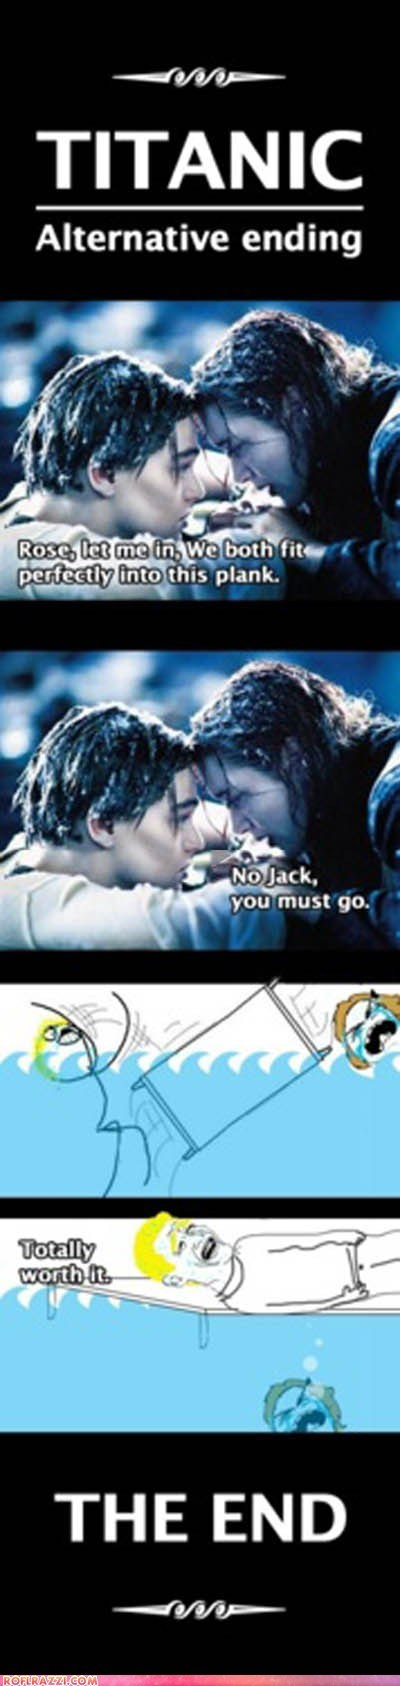 Titanic: The Alternate Ending